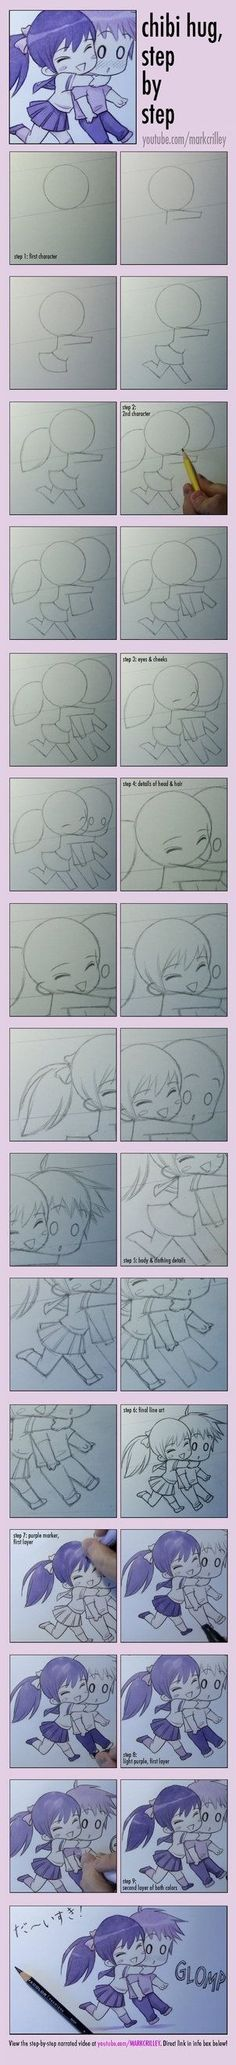 How to: hugging chibi's.